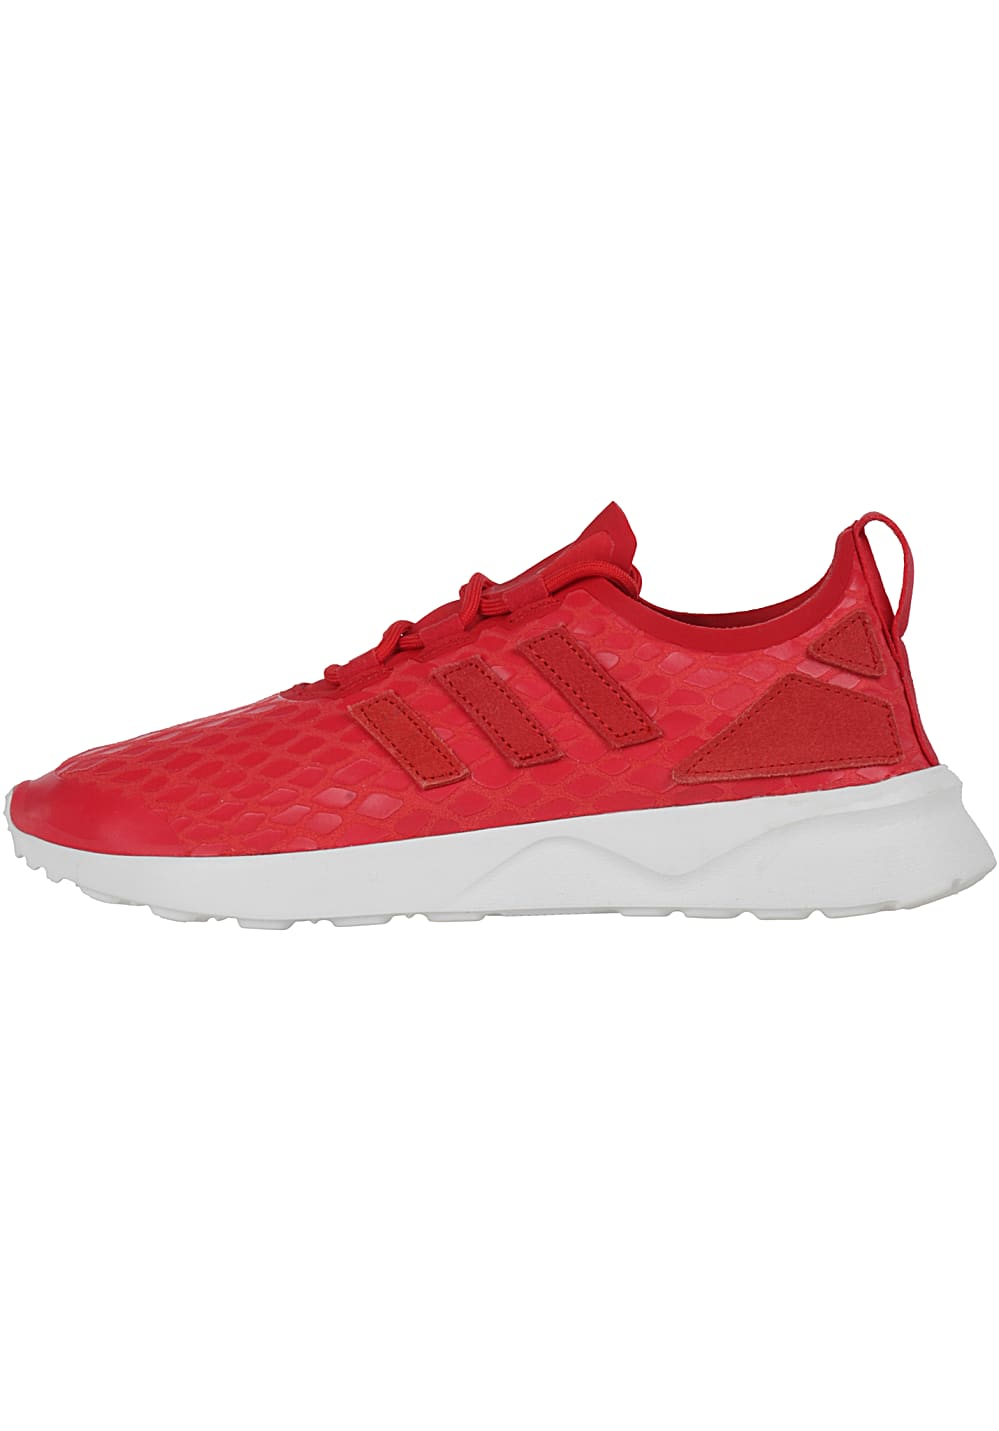 finest selection 4e54f b5869 ADIDAS ORIGINALS ZX Flux ADV Verve - Sneakers for Women - Red